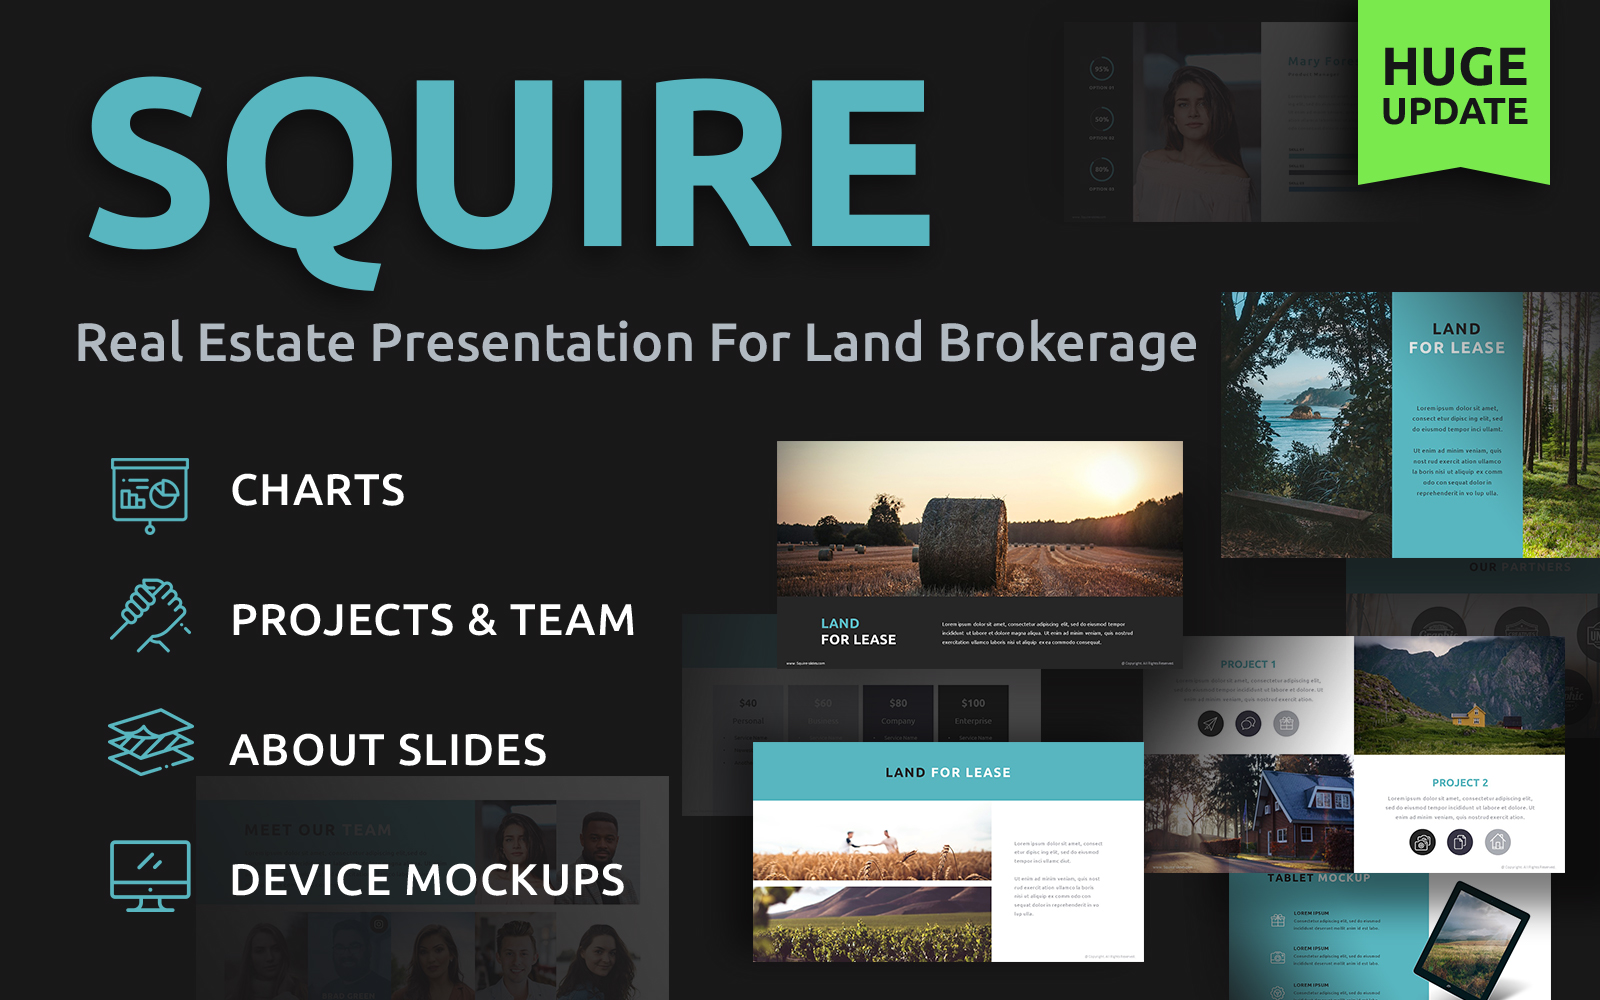 Squire Land Brokerage Powerpoint #86641